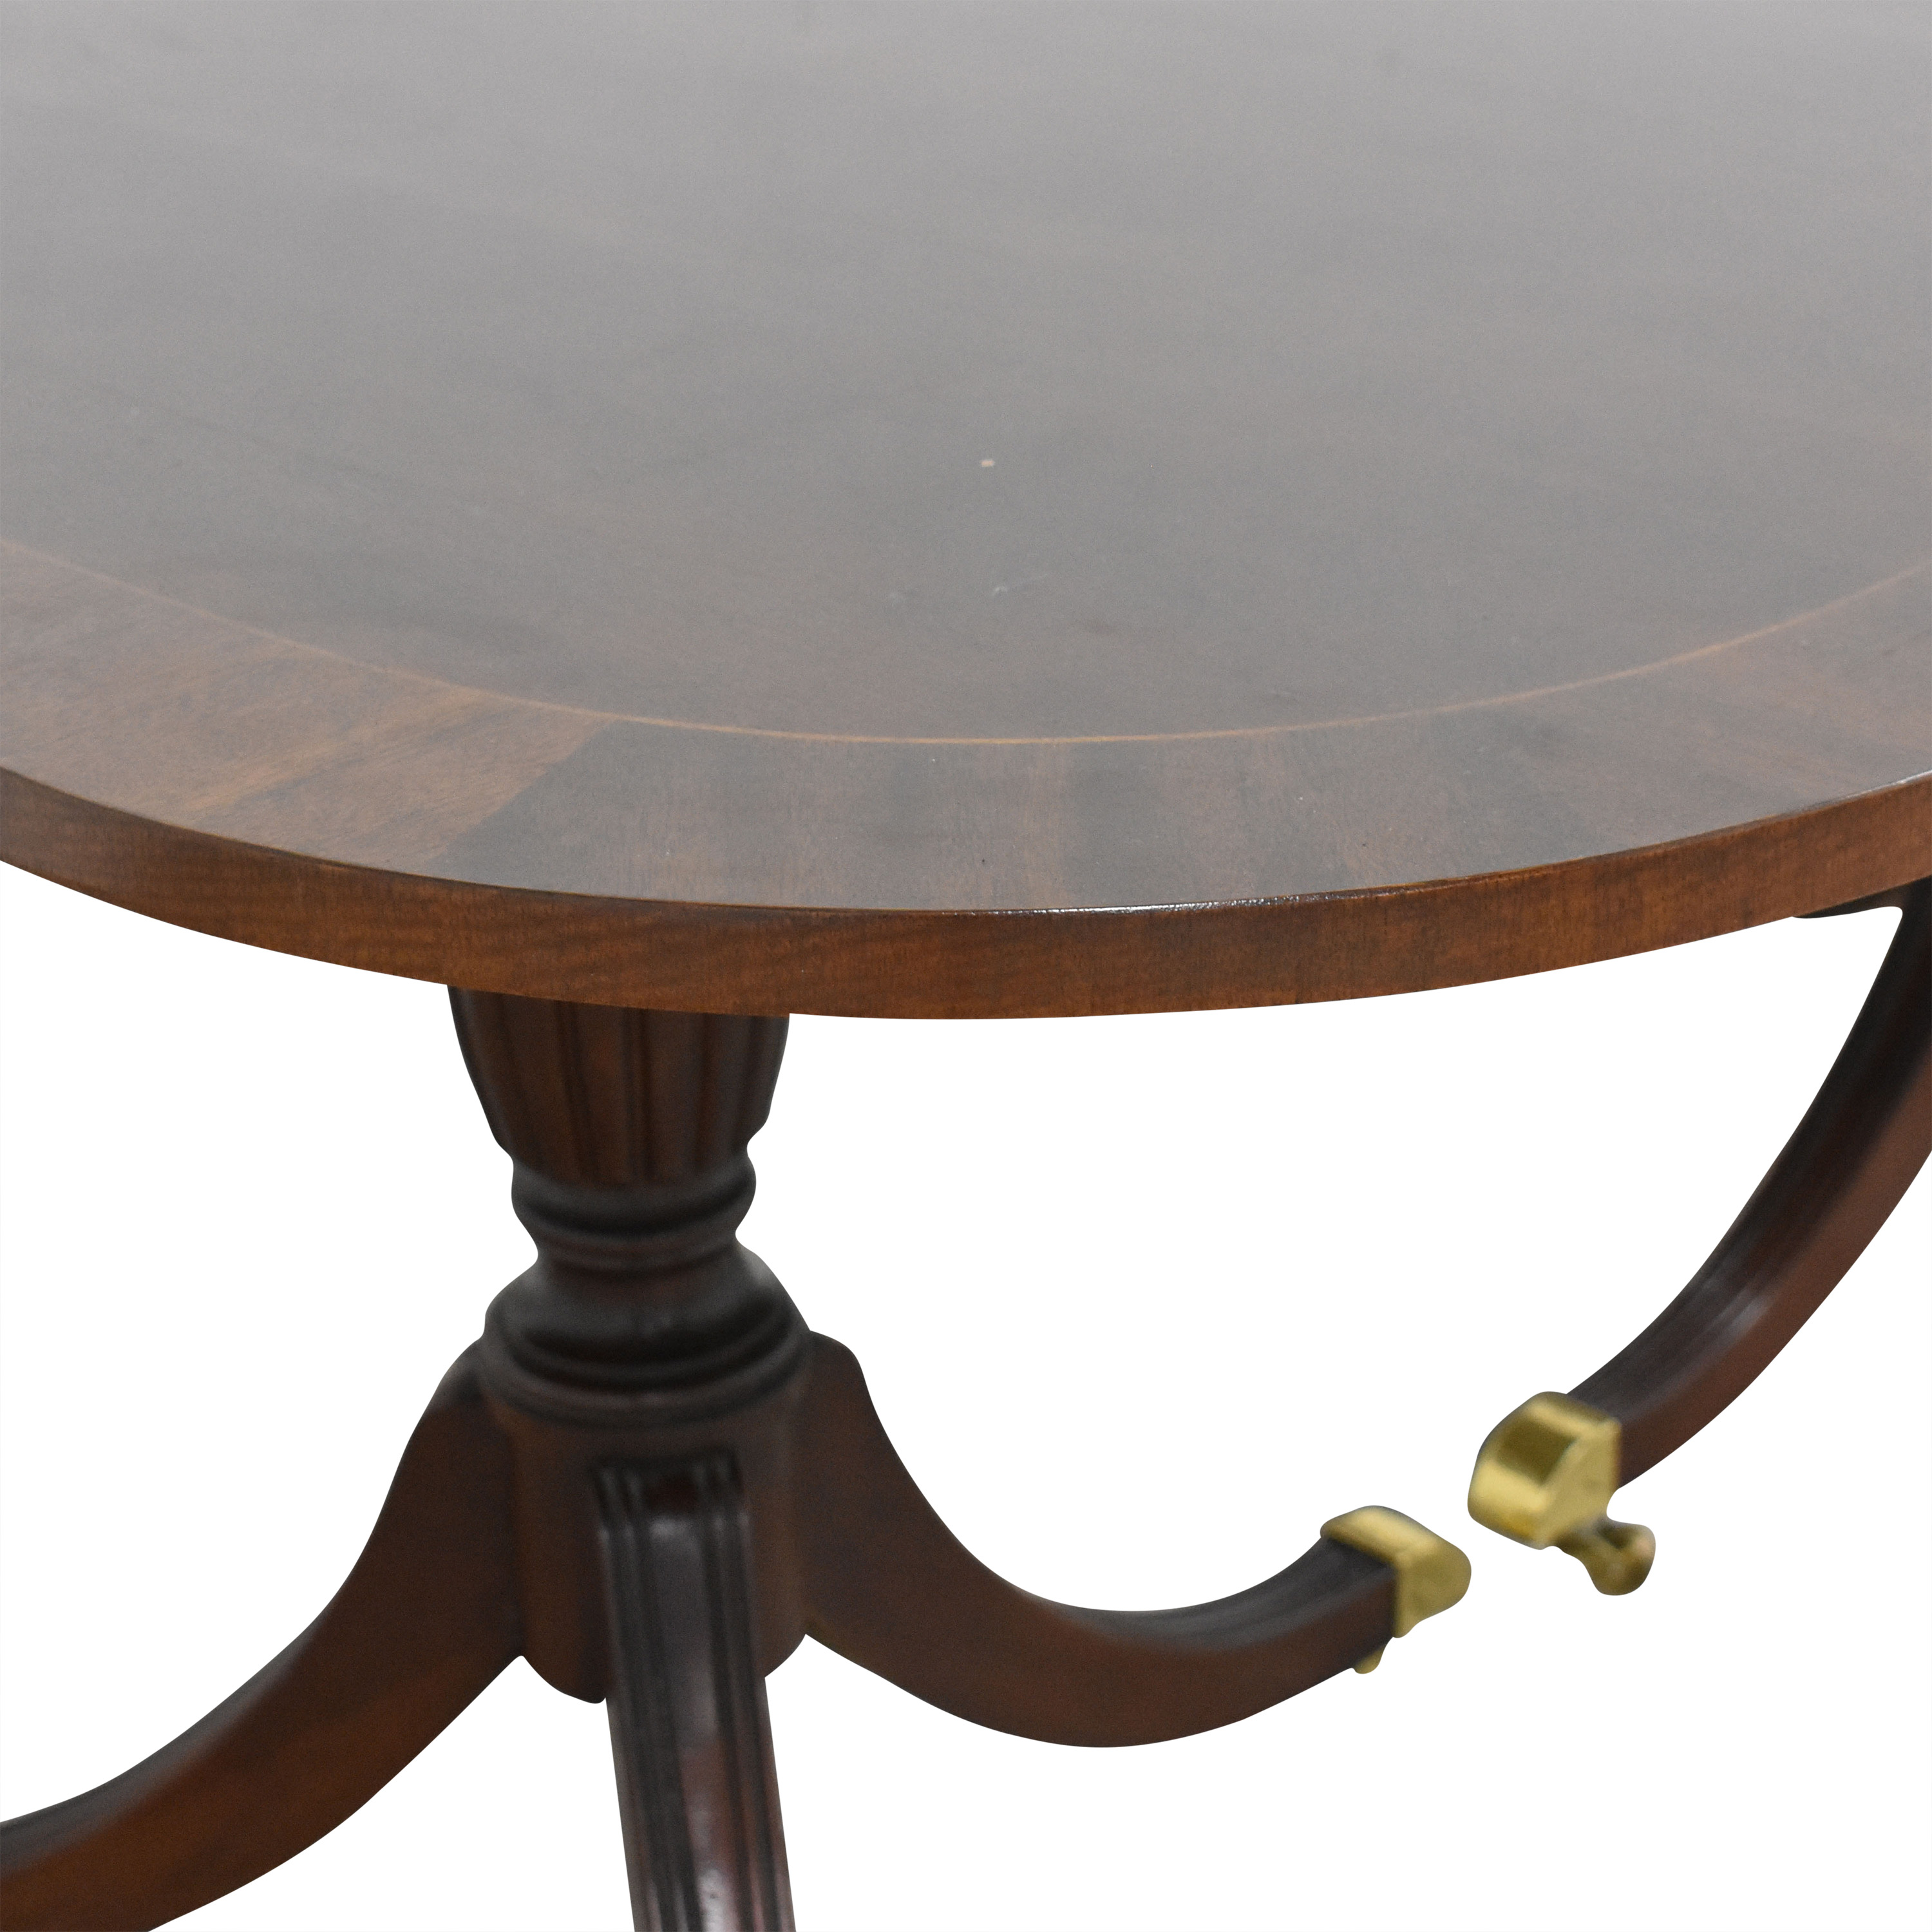 Councill Councill Extendable Dining Table on Casters price